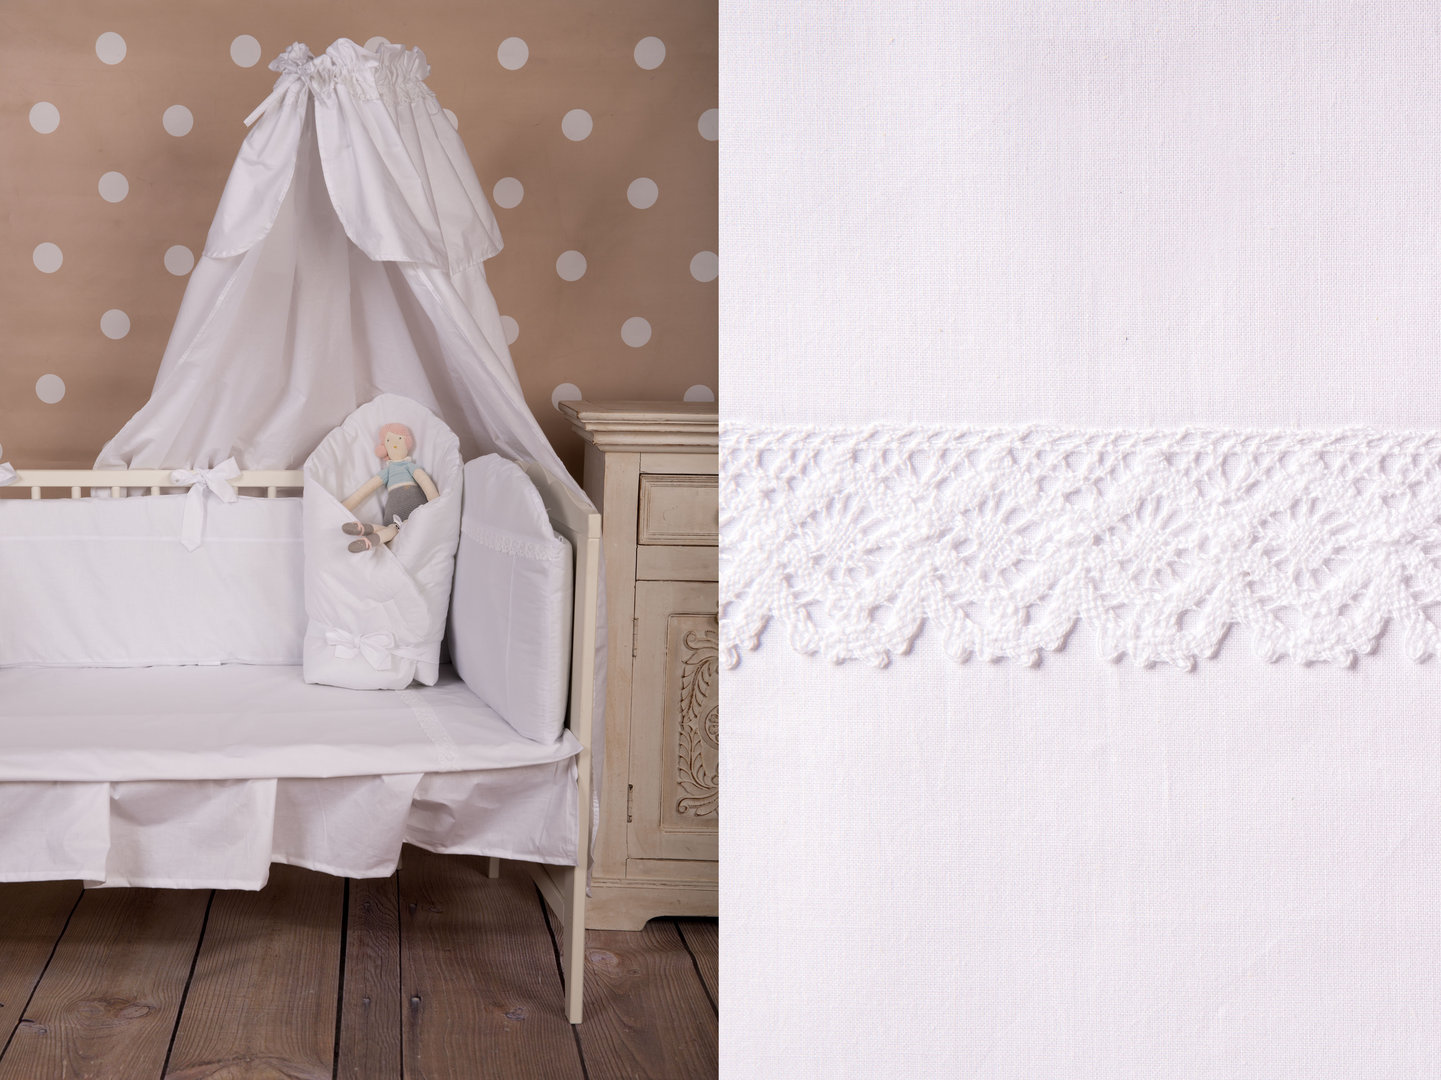 Duvet Cover Bedding Set For Cot Bed White Lace Collection